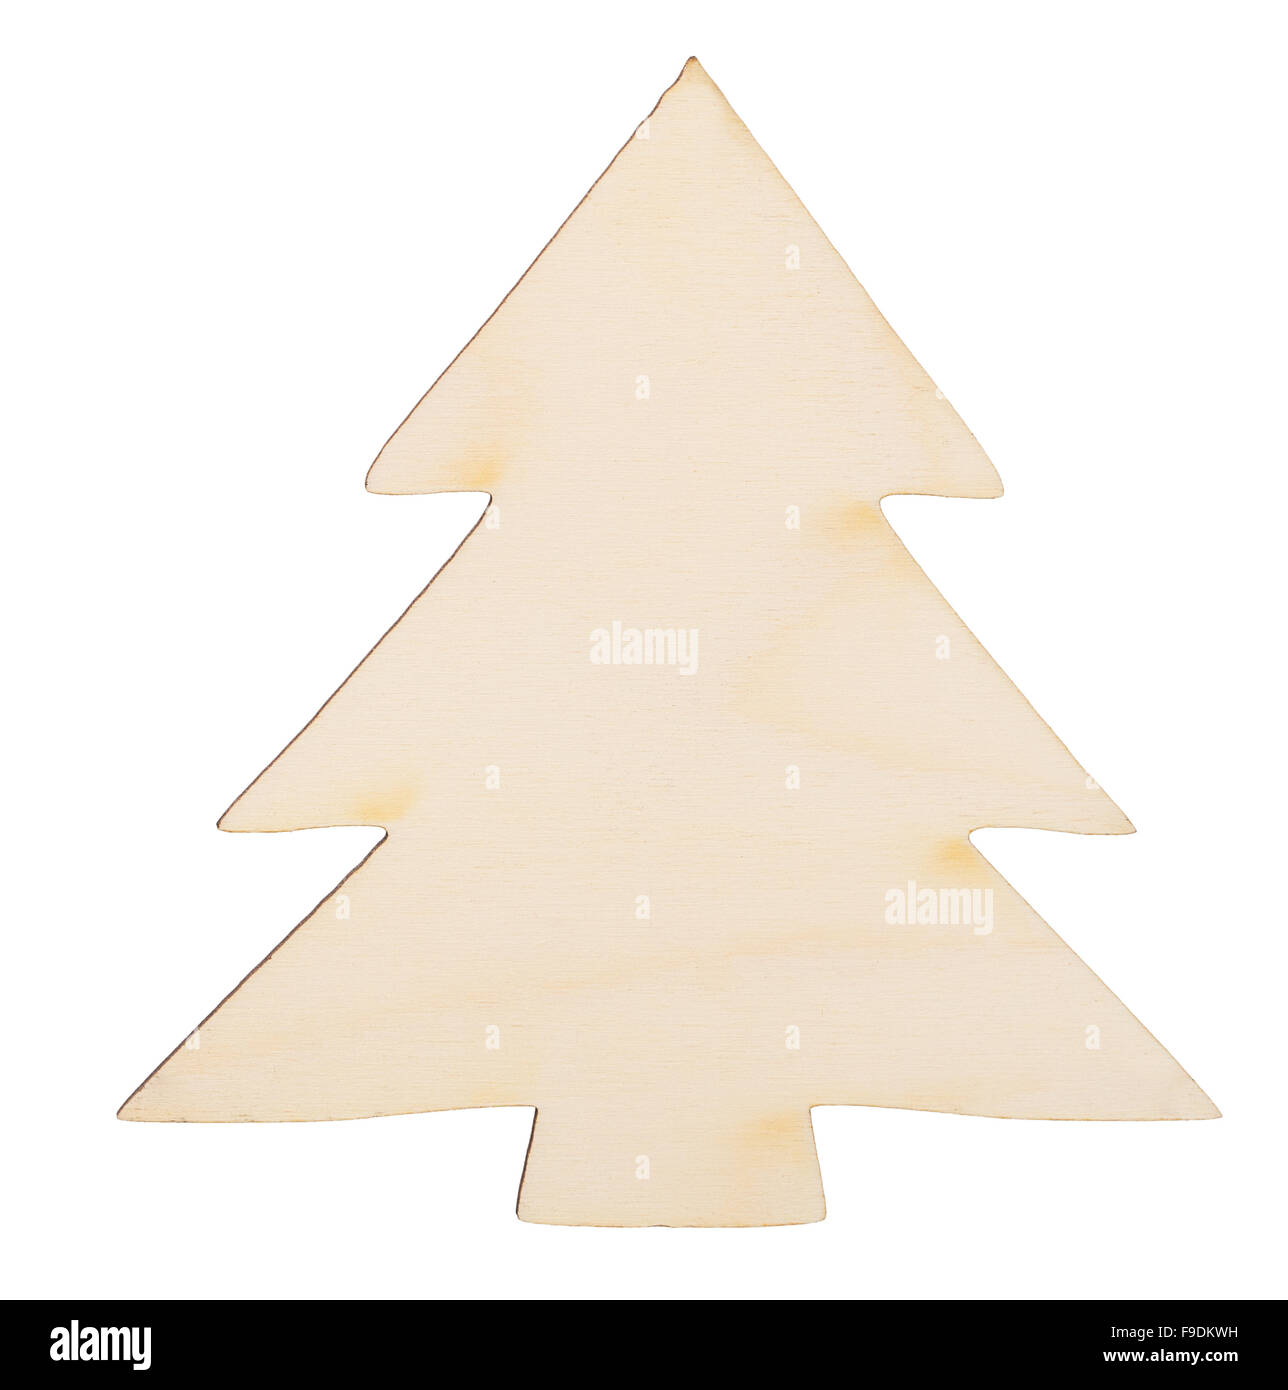 a919350cfa612 Christmas tree shape made of wood decoration isolated on white background